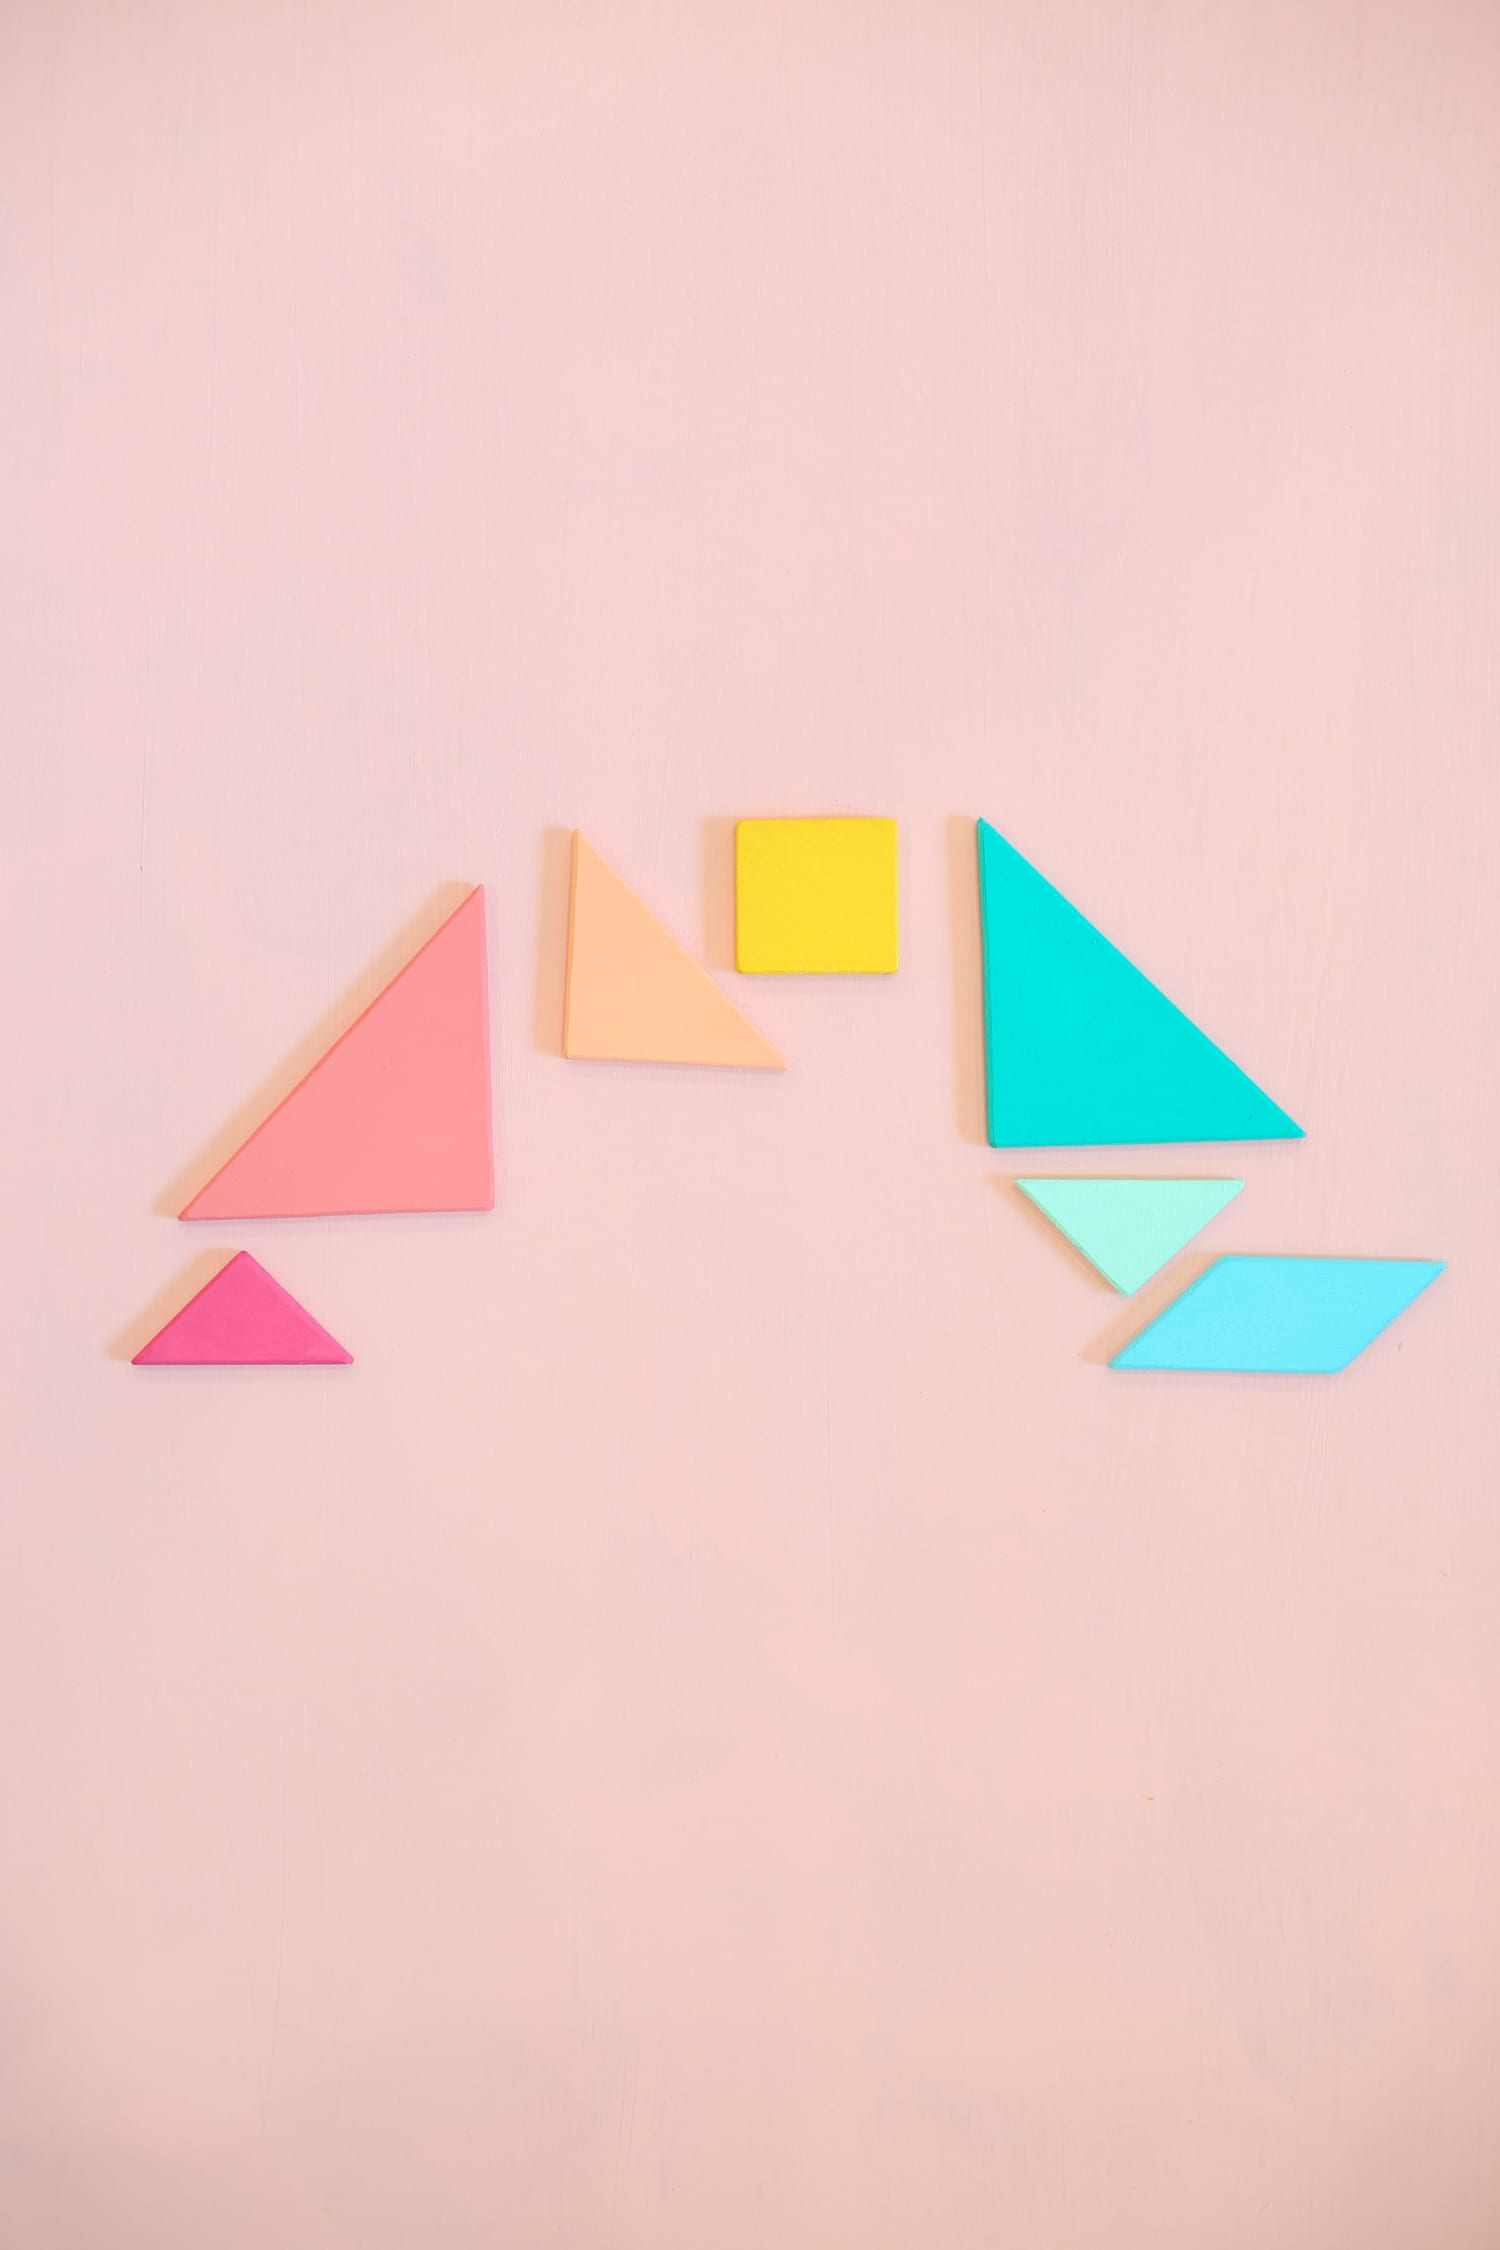 How To Make Tangrams And Tangram Shapes For Kids